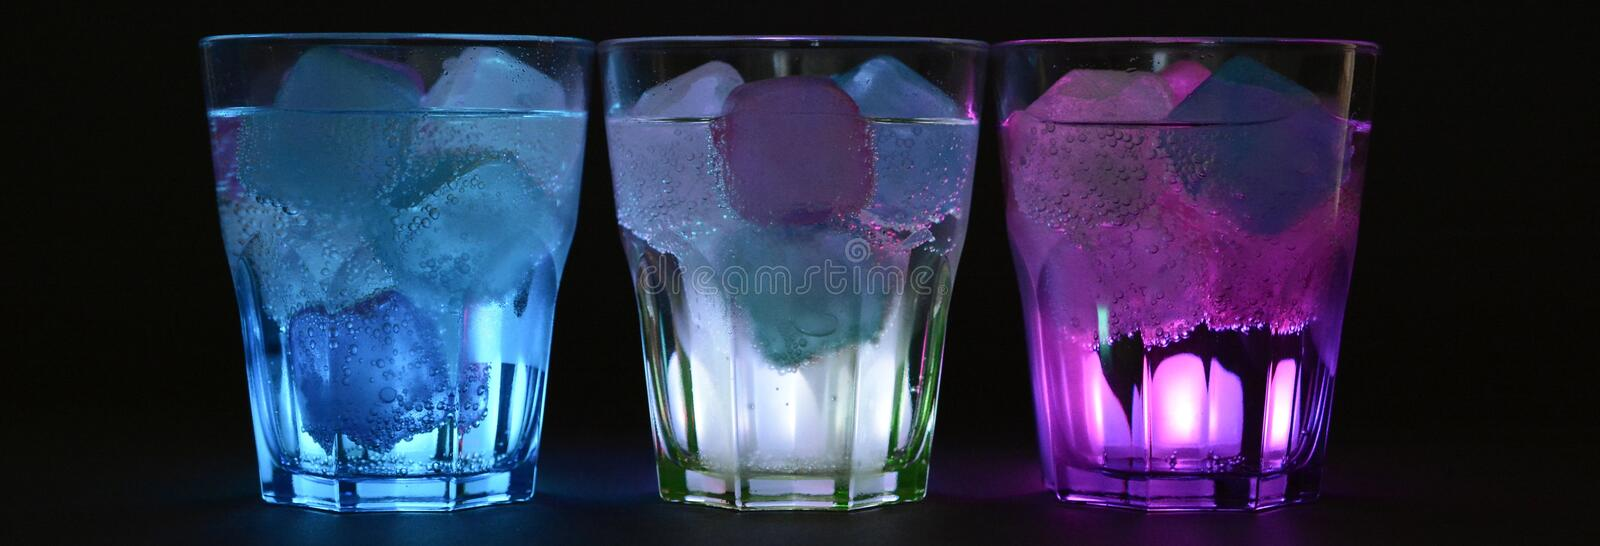 Blue White and Purple Beverage With Ice on Clear Drinking Glass royalty free stock image